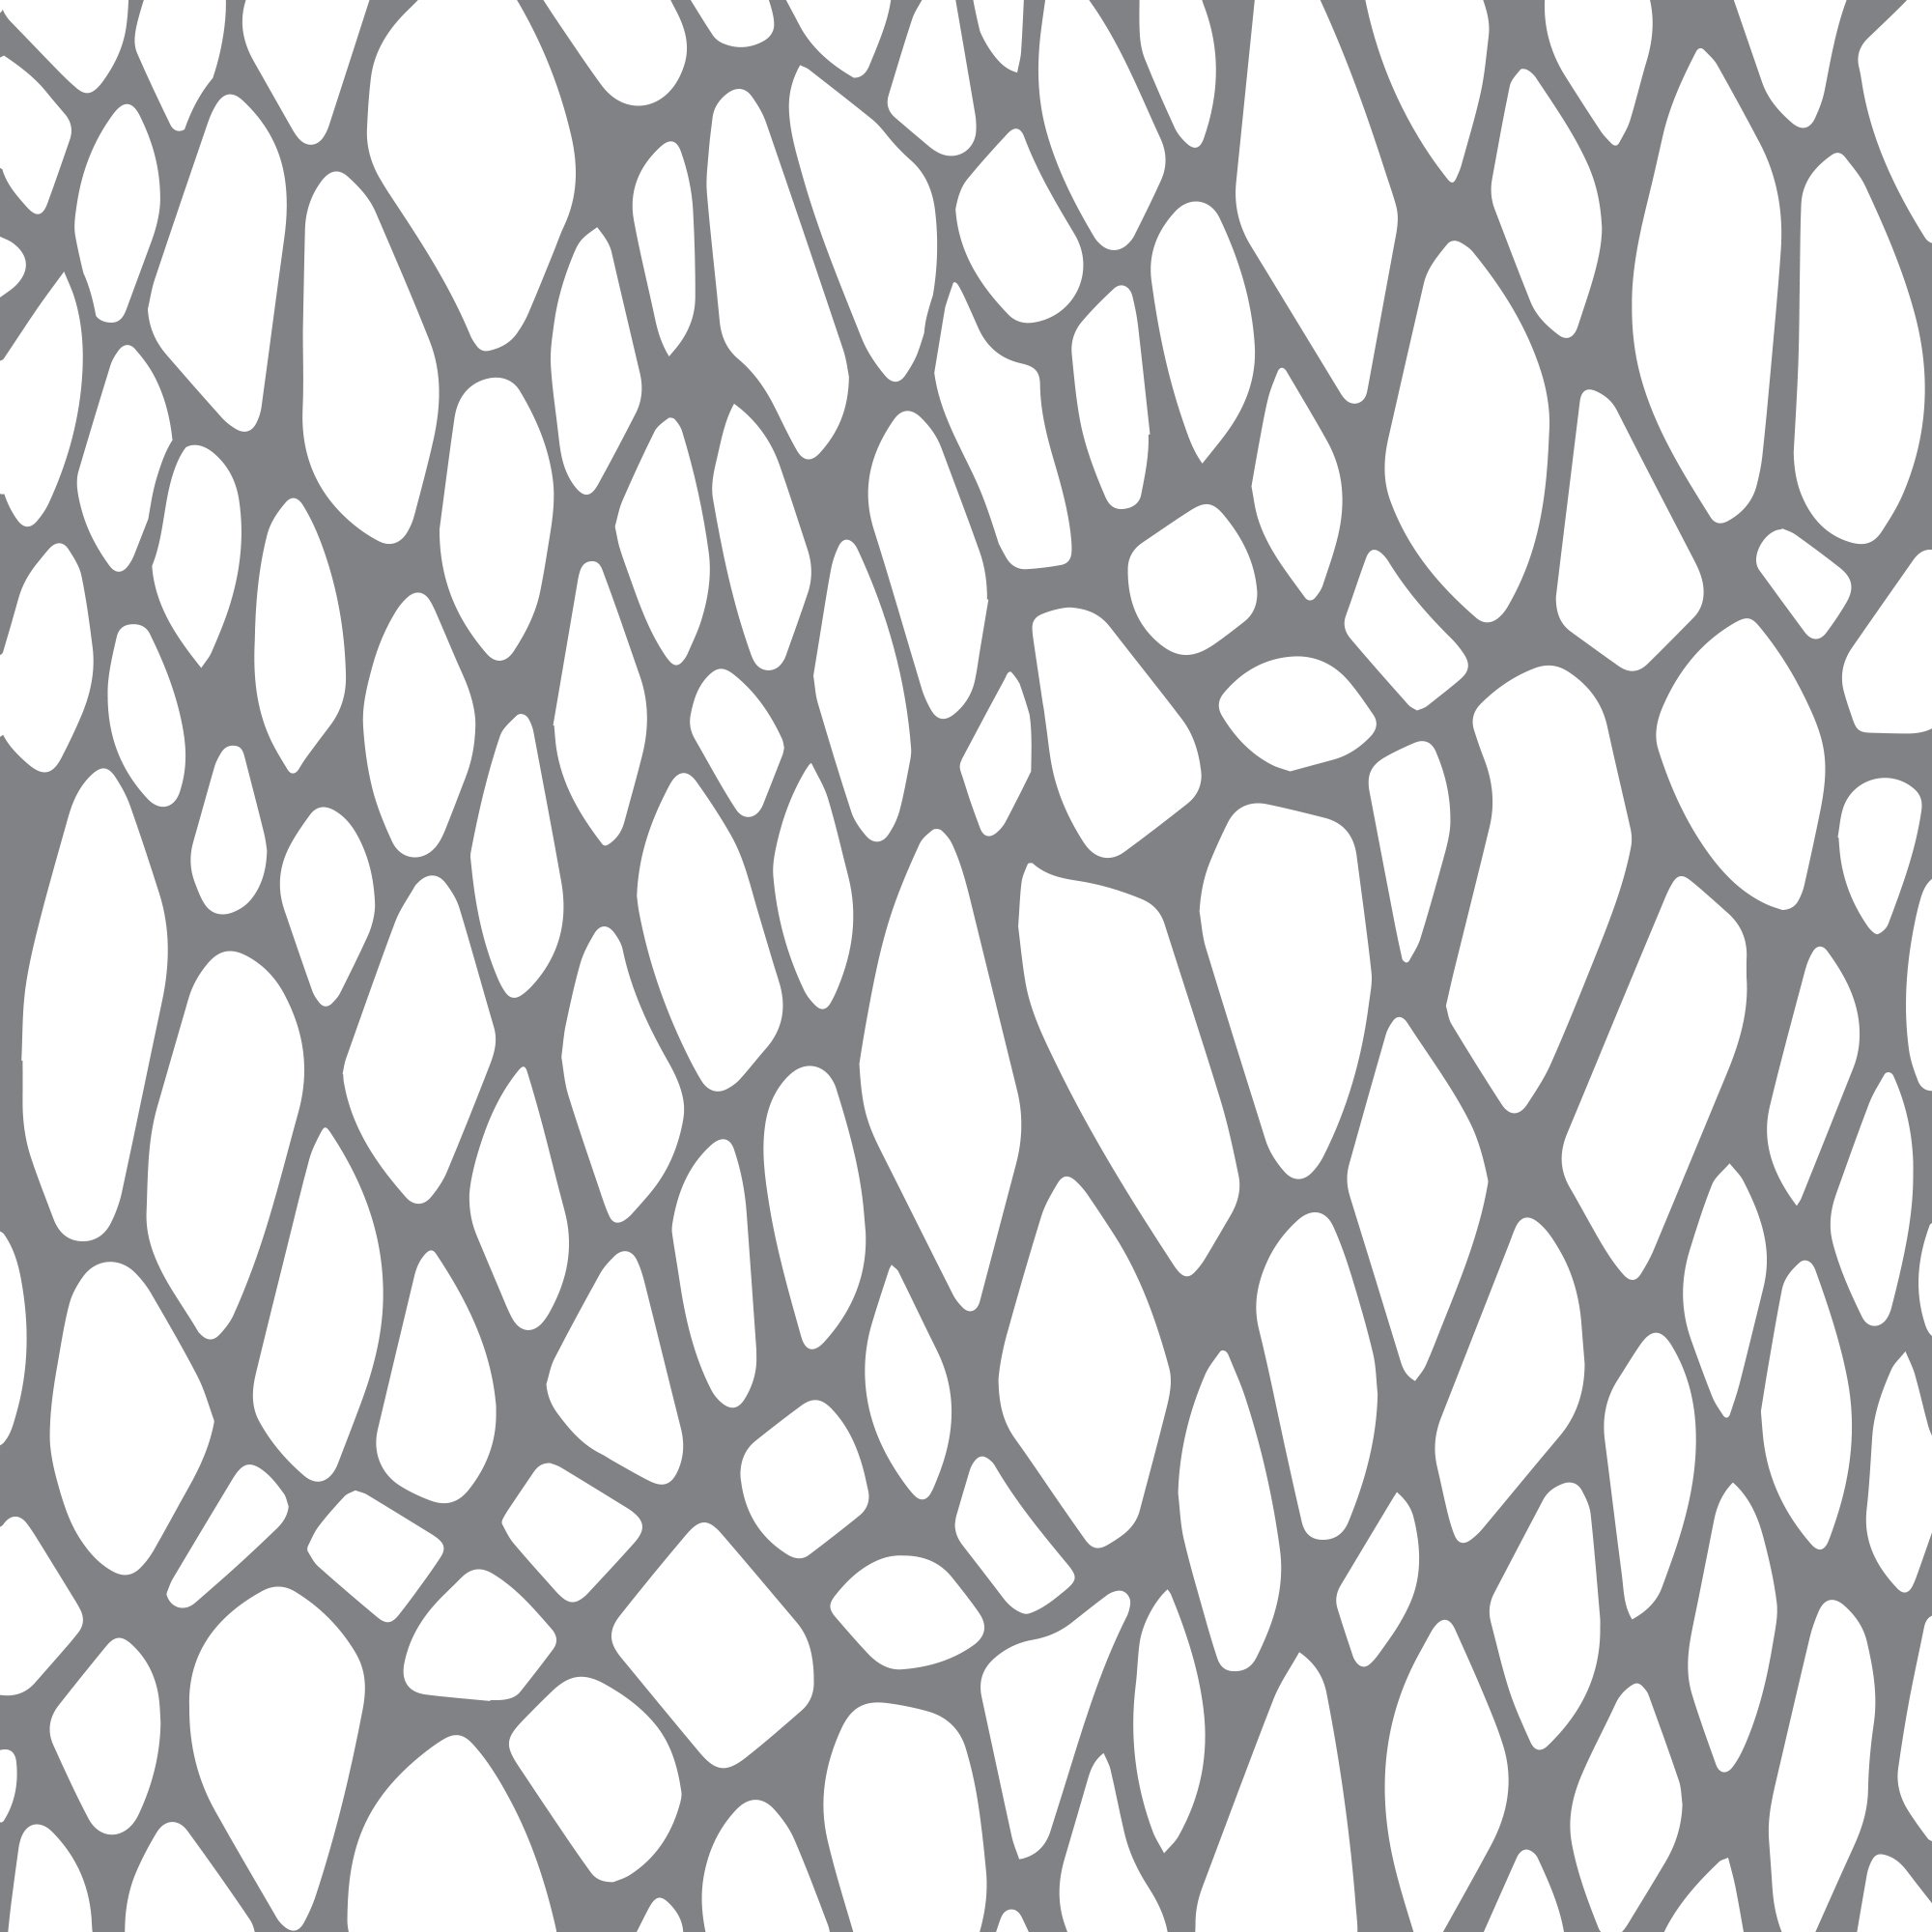 Crafters Workshop Templates 6-Inchx6-Inch-Fish Scales